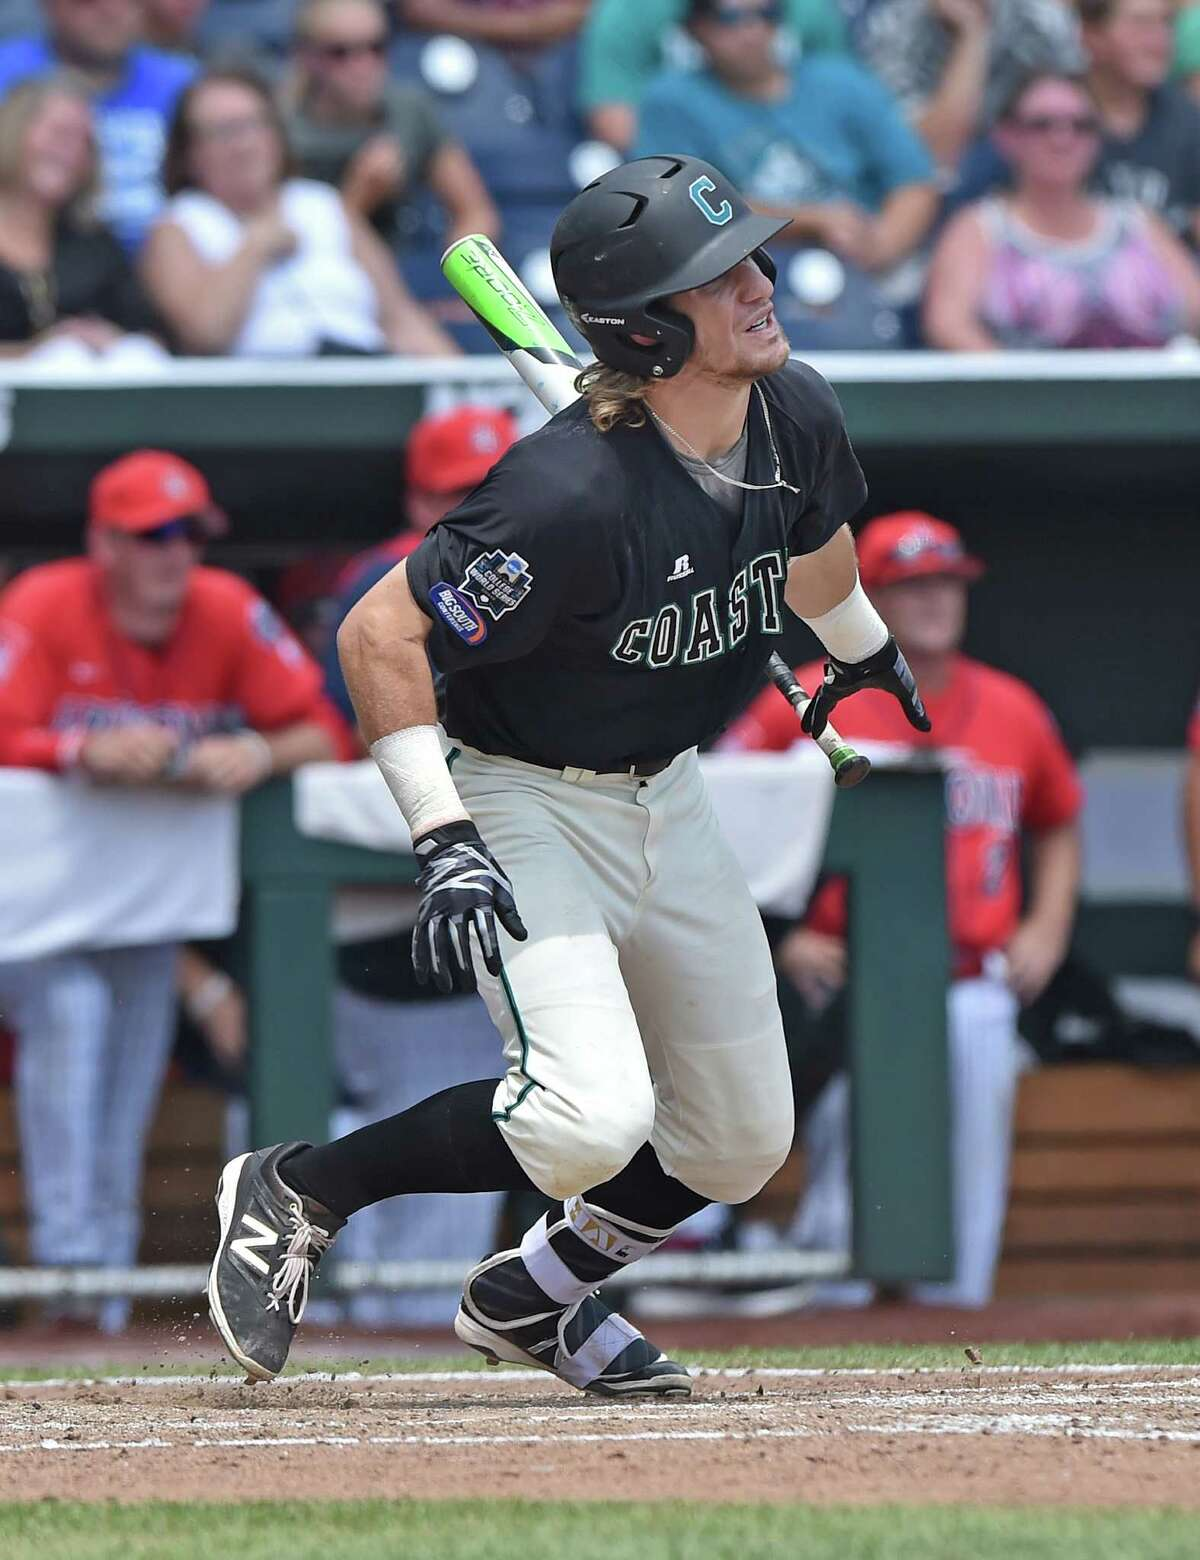 Omaha, NE - JUNE 30: Third basemen Zach Remillard #6 of the Coastal Carolina Chanticleers drives in two runs on a two run error by the Arizona Wildcats in the sixth inning during game three of the College World Series Championship Series on June 30, 2016 at TD Ameritrade Park in Omaha, Nebraska. (Photo by Peter Aiken/Getty Images) ORG XMIT: 651319573